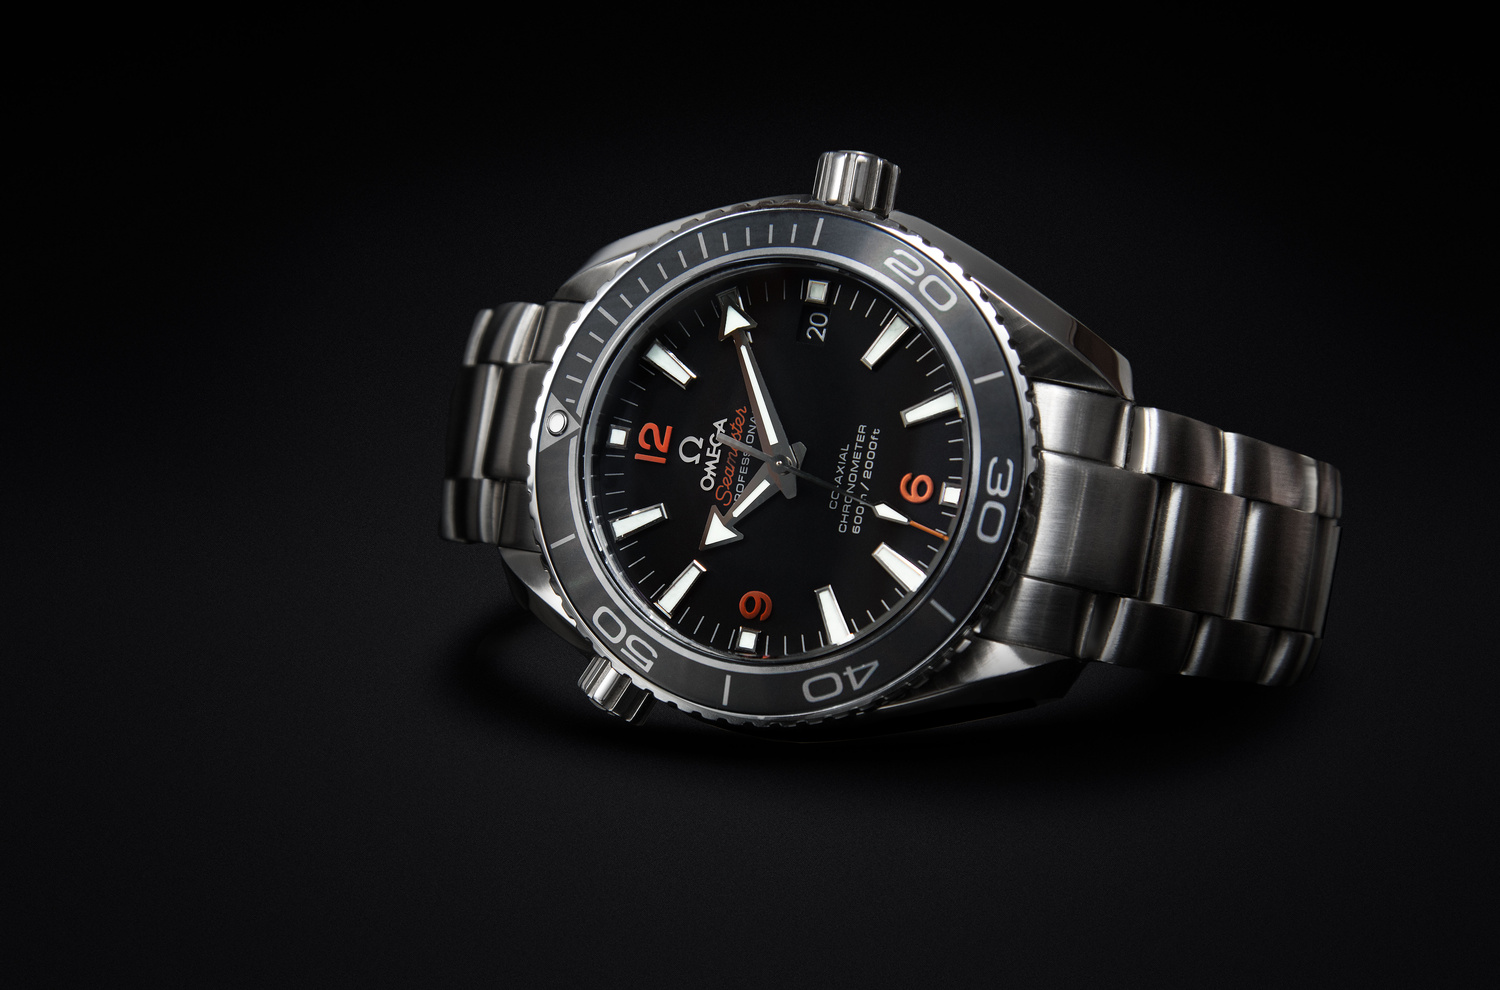 Omega commercial shot  by Luca Russo